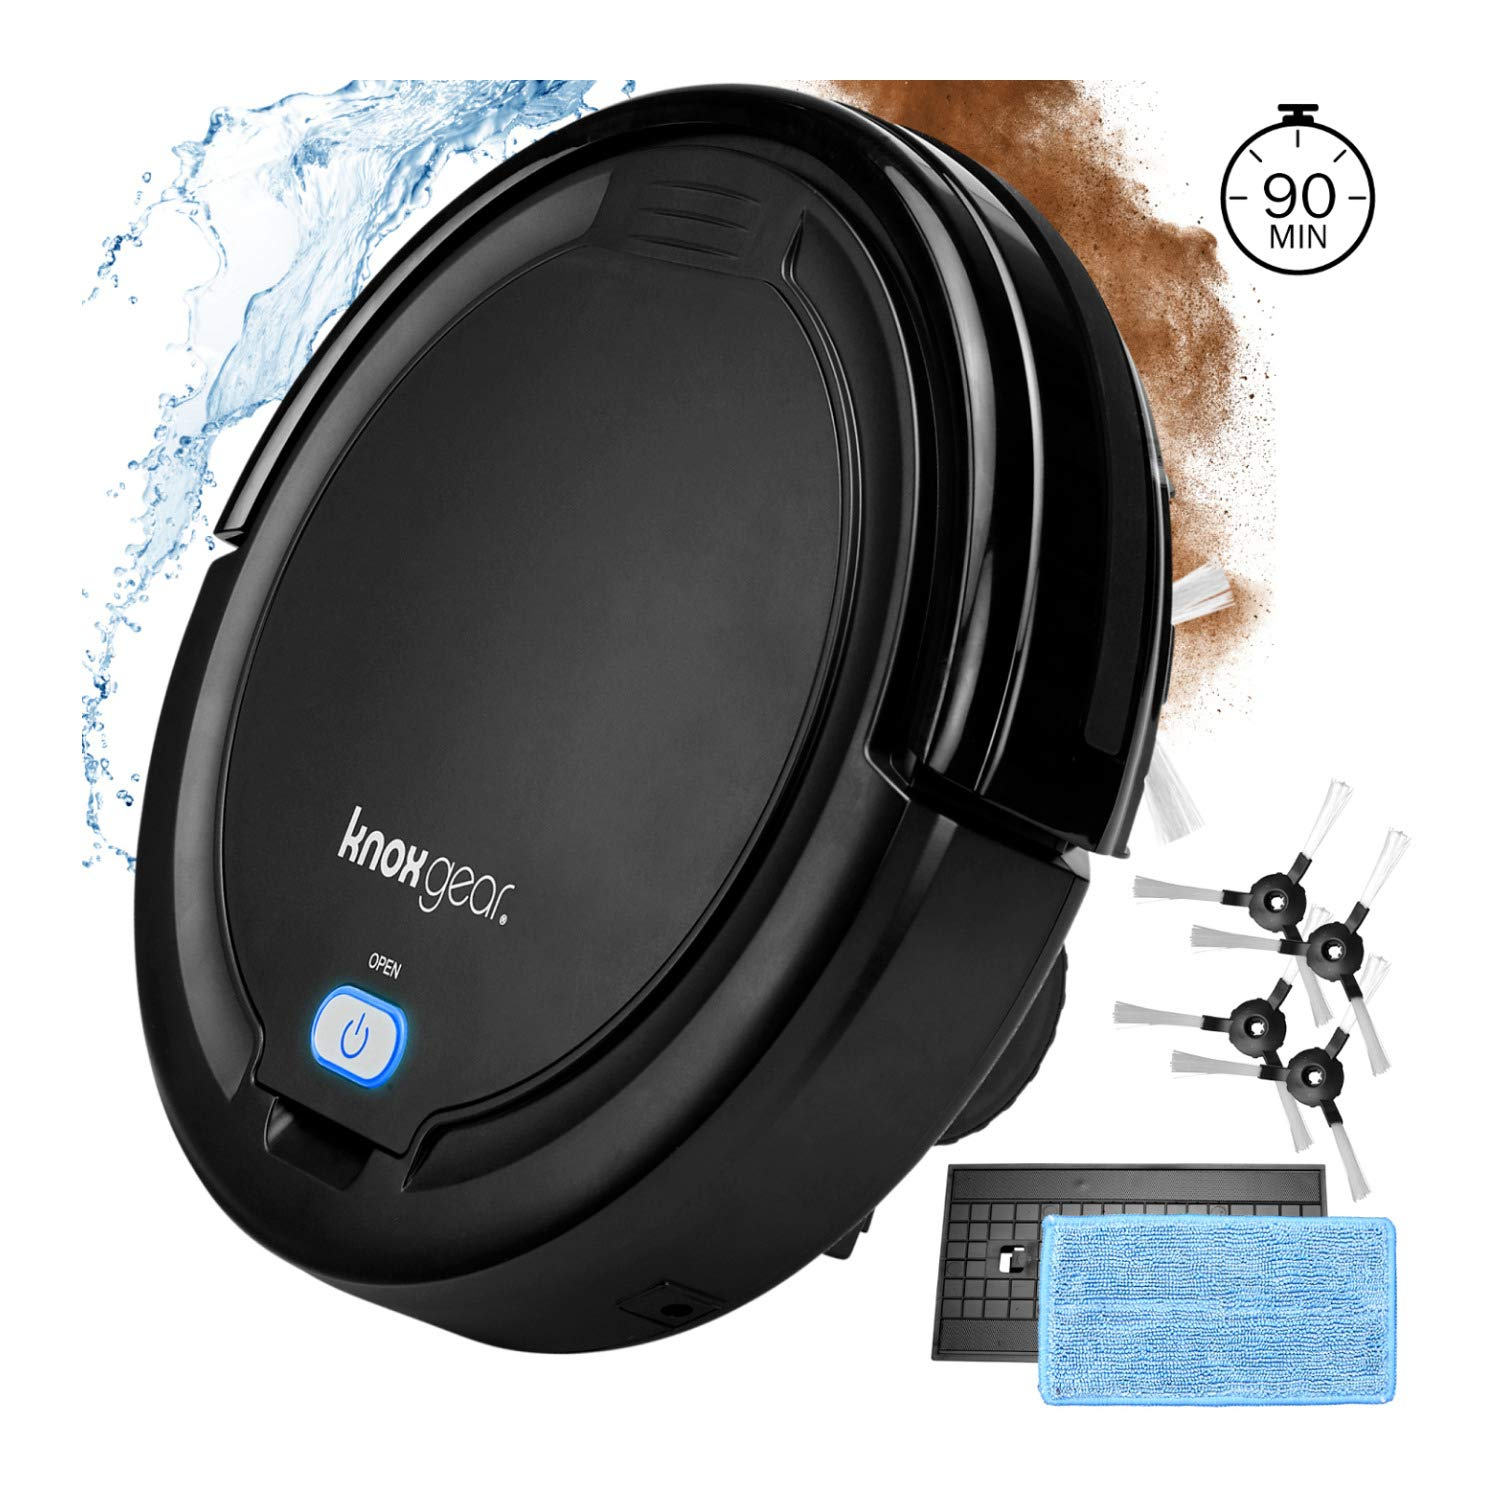 Knox Robot Vacuum Cleaner and Mop - Dual Rotating Brushes for Hardwood Floors, Tiles, Pet Hair - Smart Anti Fall Sensor, 90 Minute Run Time - 2 x Bonus Side Brushes and 2 x Filters by Knox